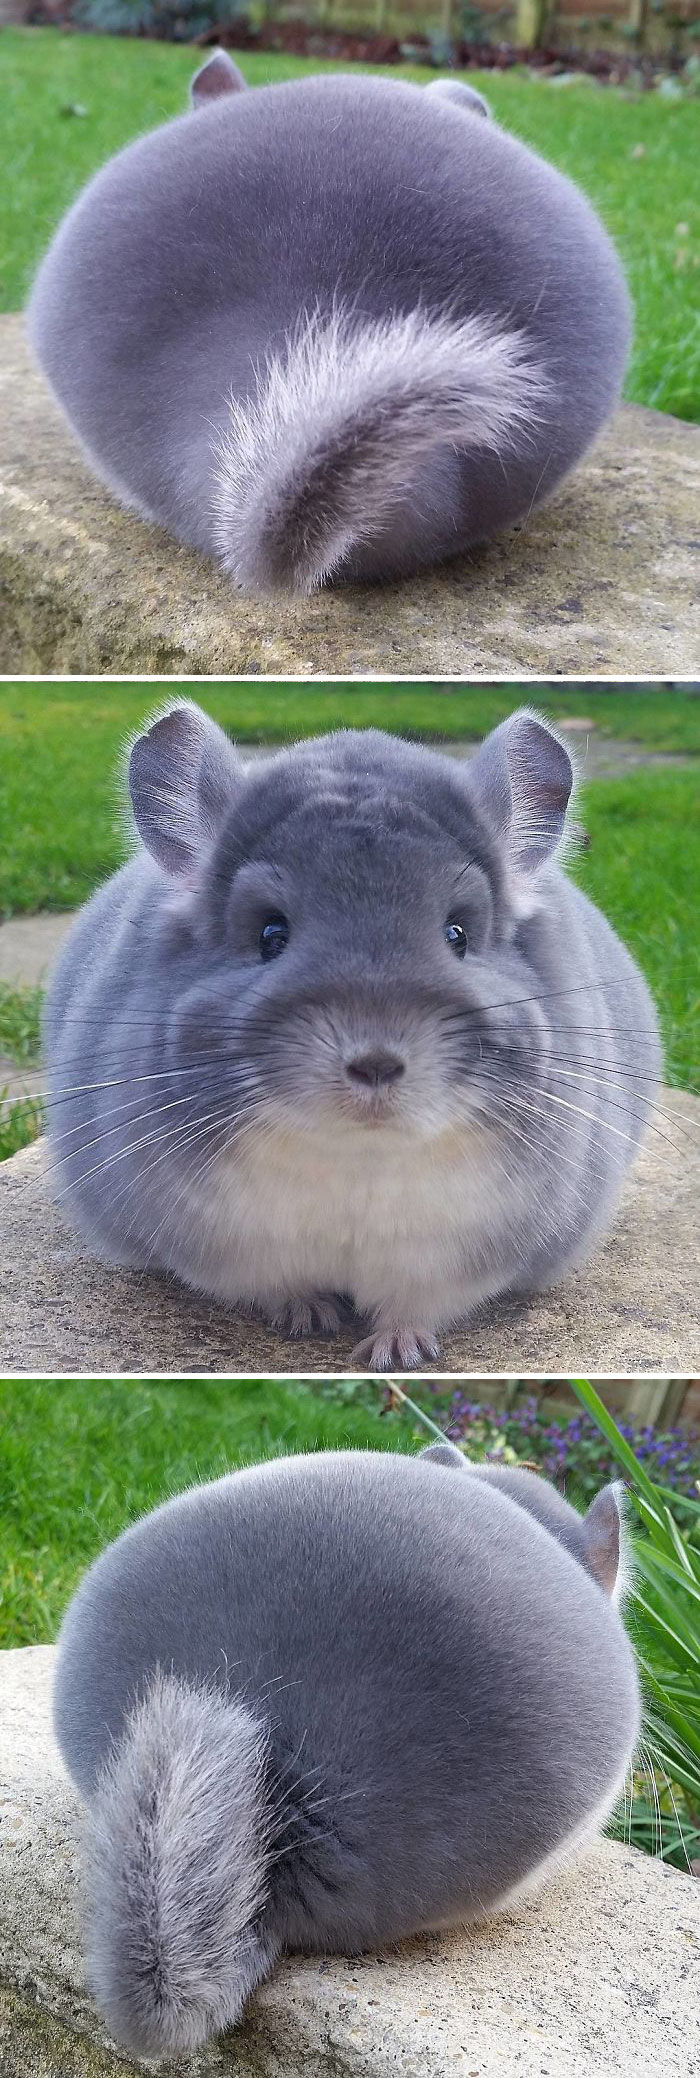 These Chinchillas